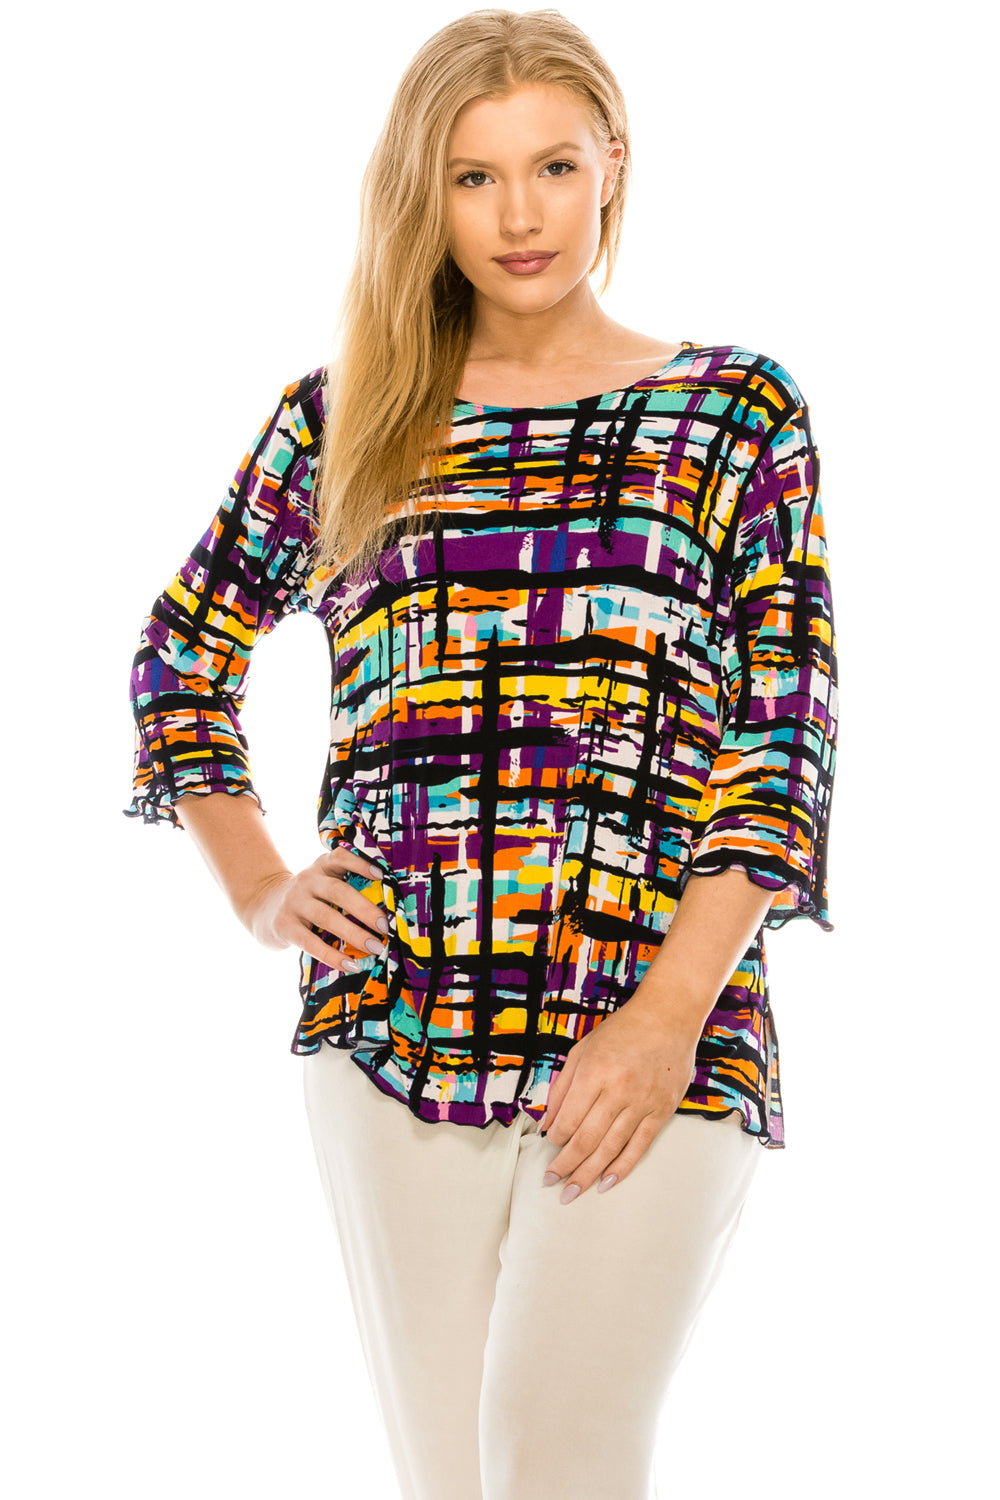 Jostar Women's Stretchy Merrow Top Three Quarter Print, 158BN-QP-W198 - Jostar Online